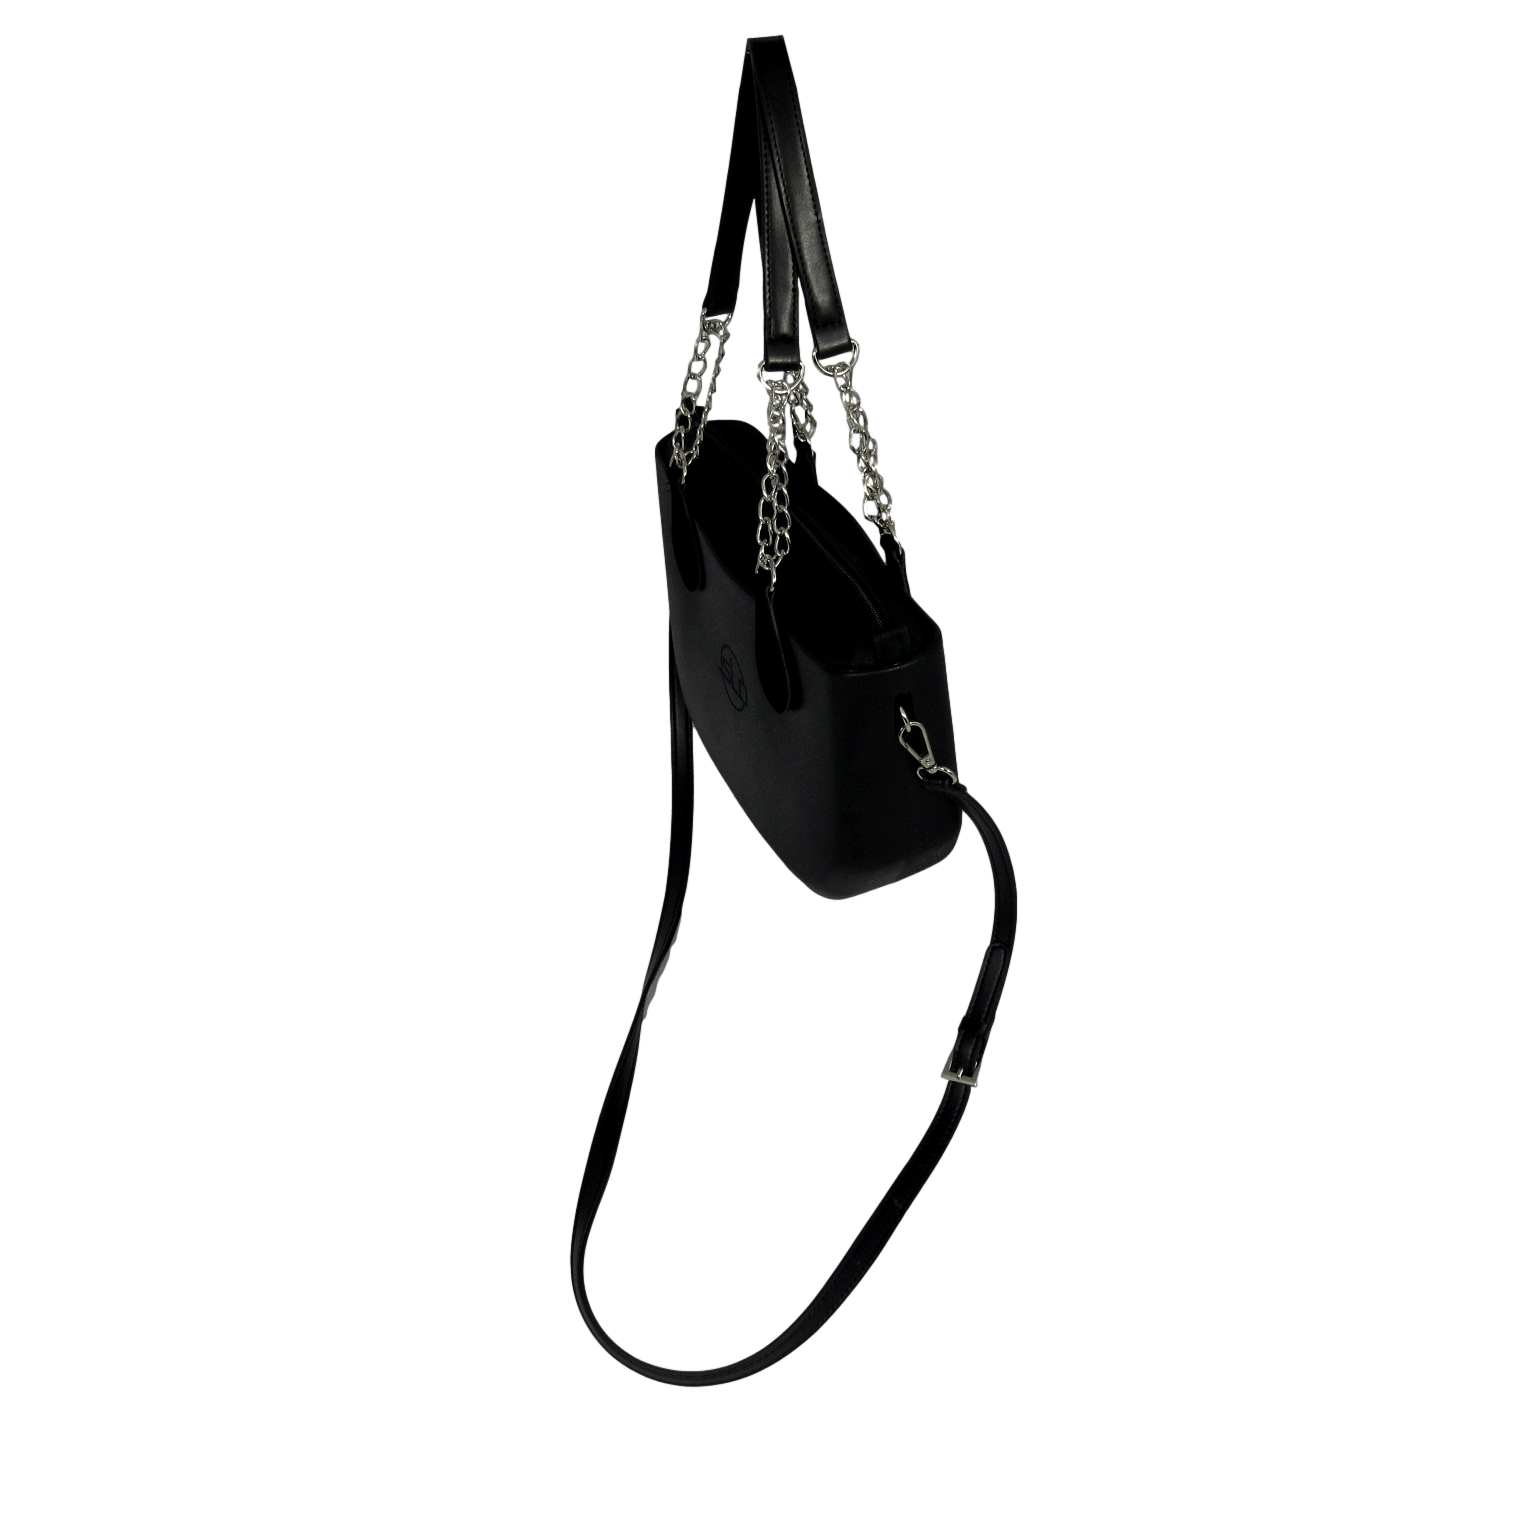 SLO Mini - Black body with top zippered Mini Insert Organizer, interchangeable handle choice and adjustable length shoulder strap.